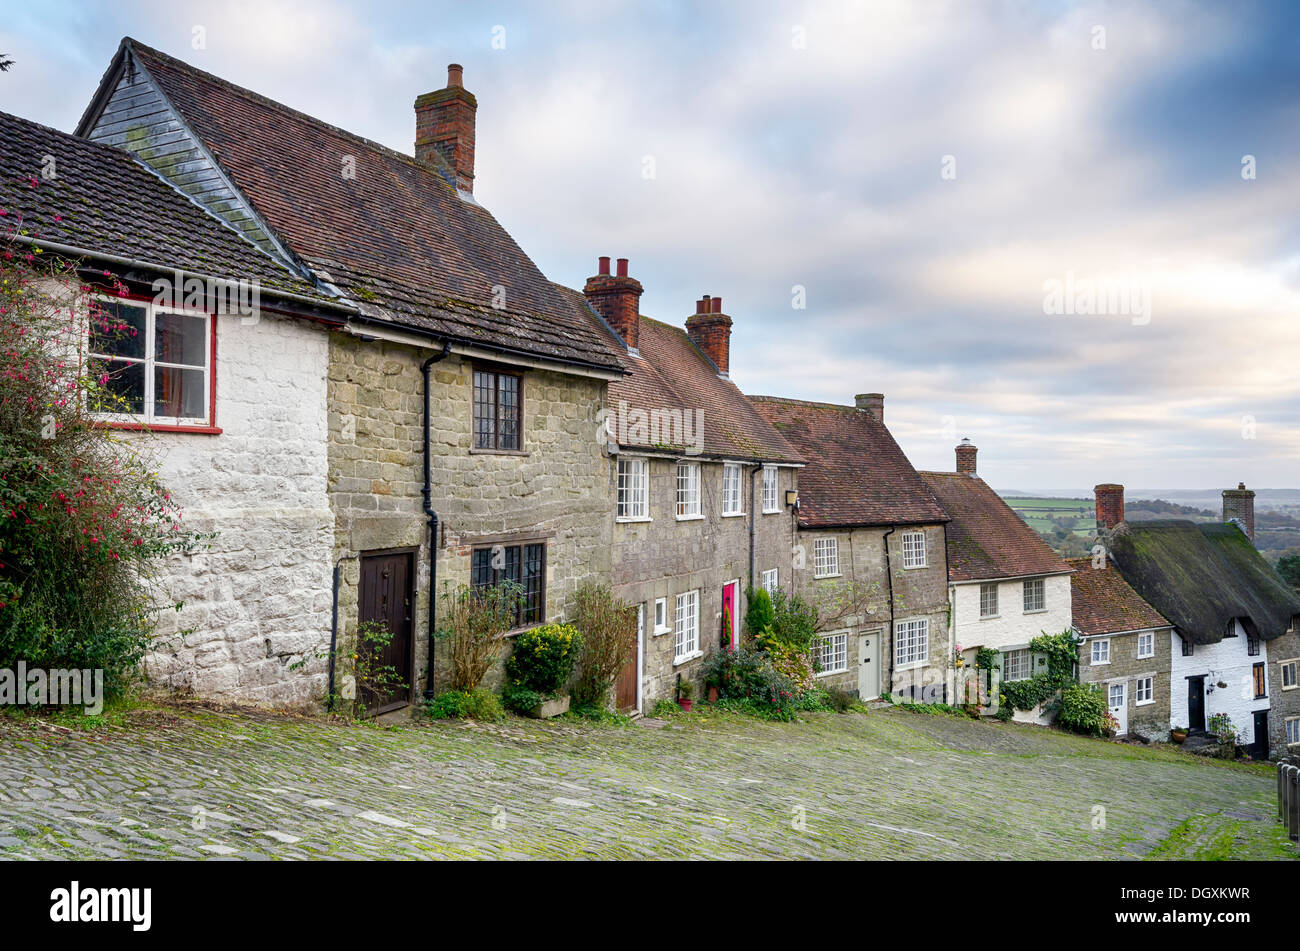 Row of quaint English cottages at Gold Hill in Shaftesbury in Dorset. Stock Photo